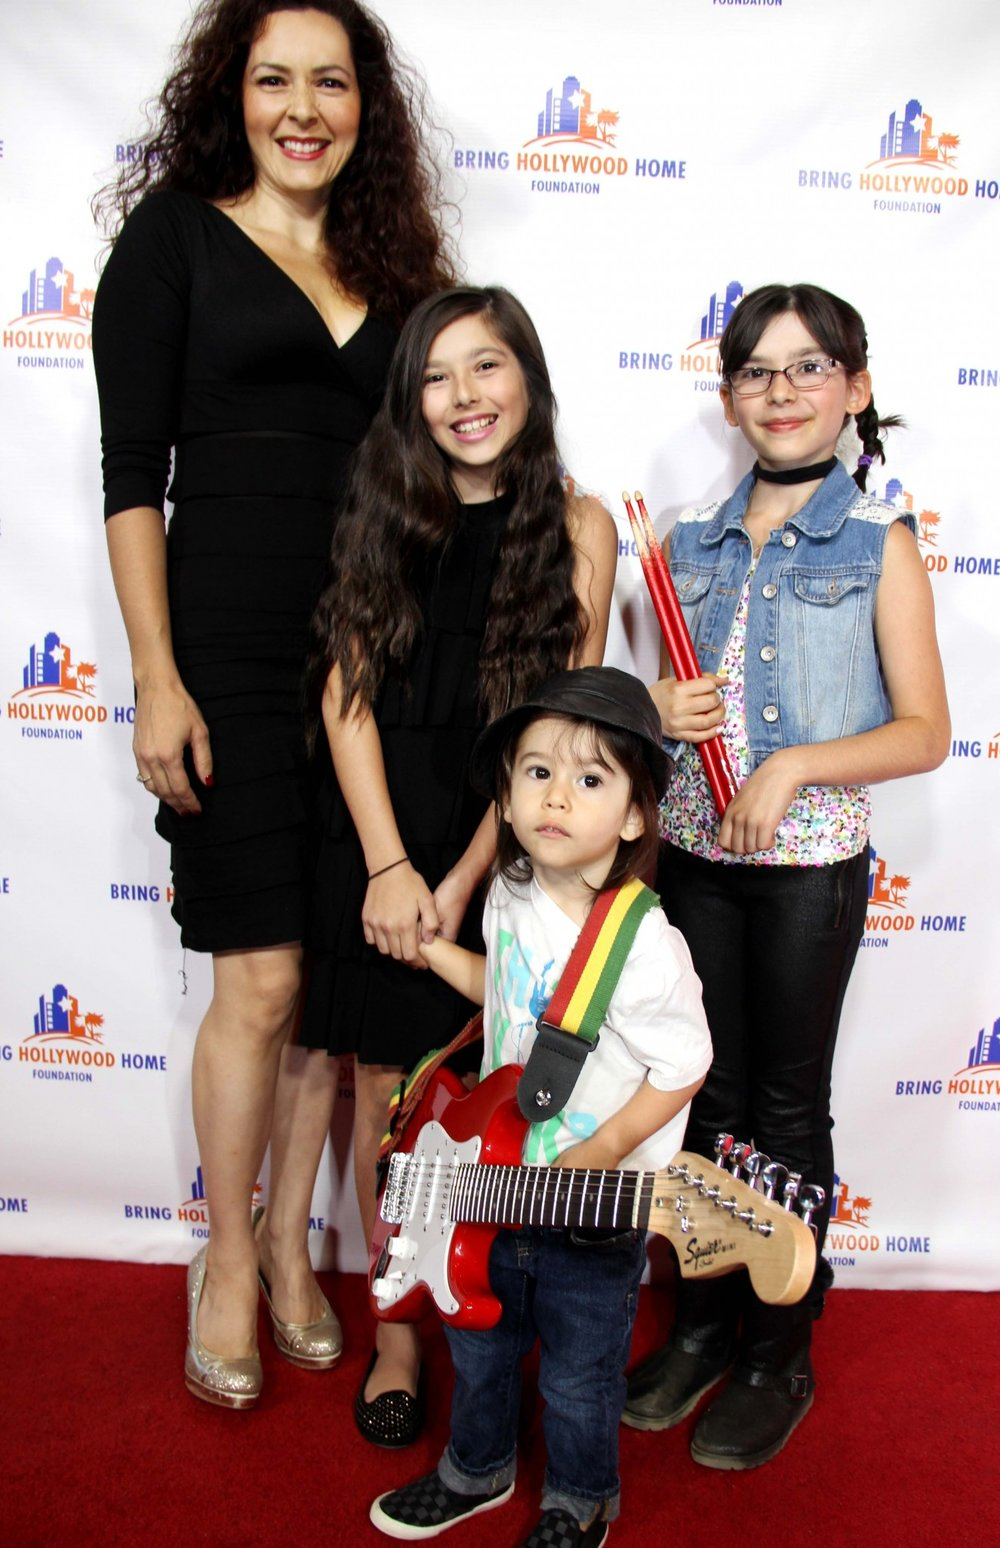 A new Guigui generation of artists brought smiles, fun and inspiration on the Bring Hollywood Home center stage. From left: Noah, Rebbeca and Esther